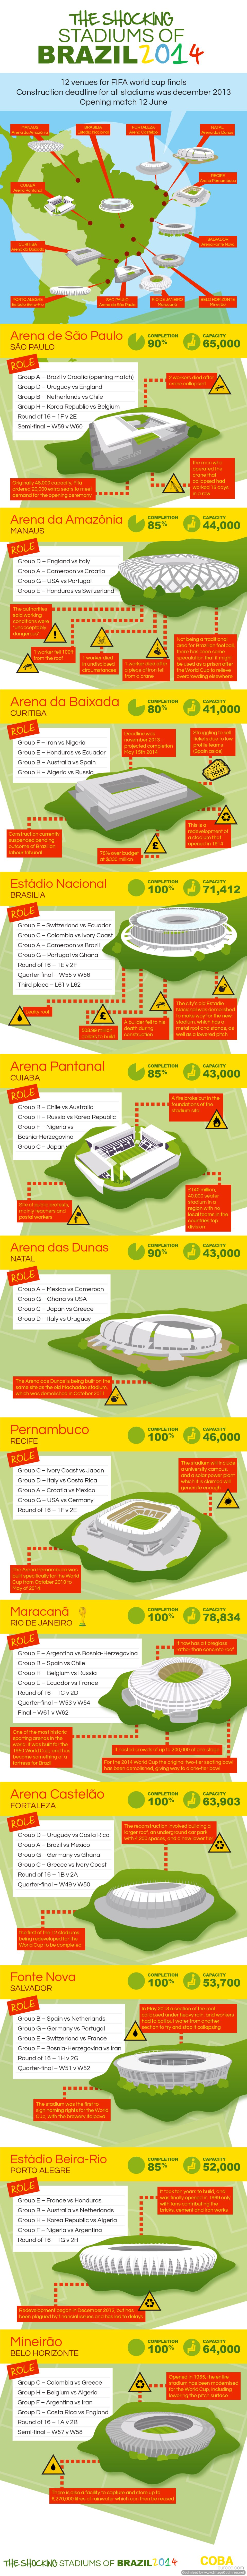 The-Shocking-Stadiums-of-Brazil-2014